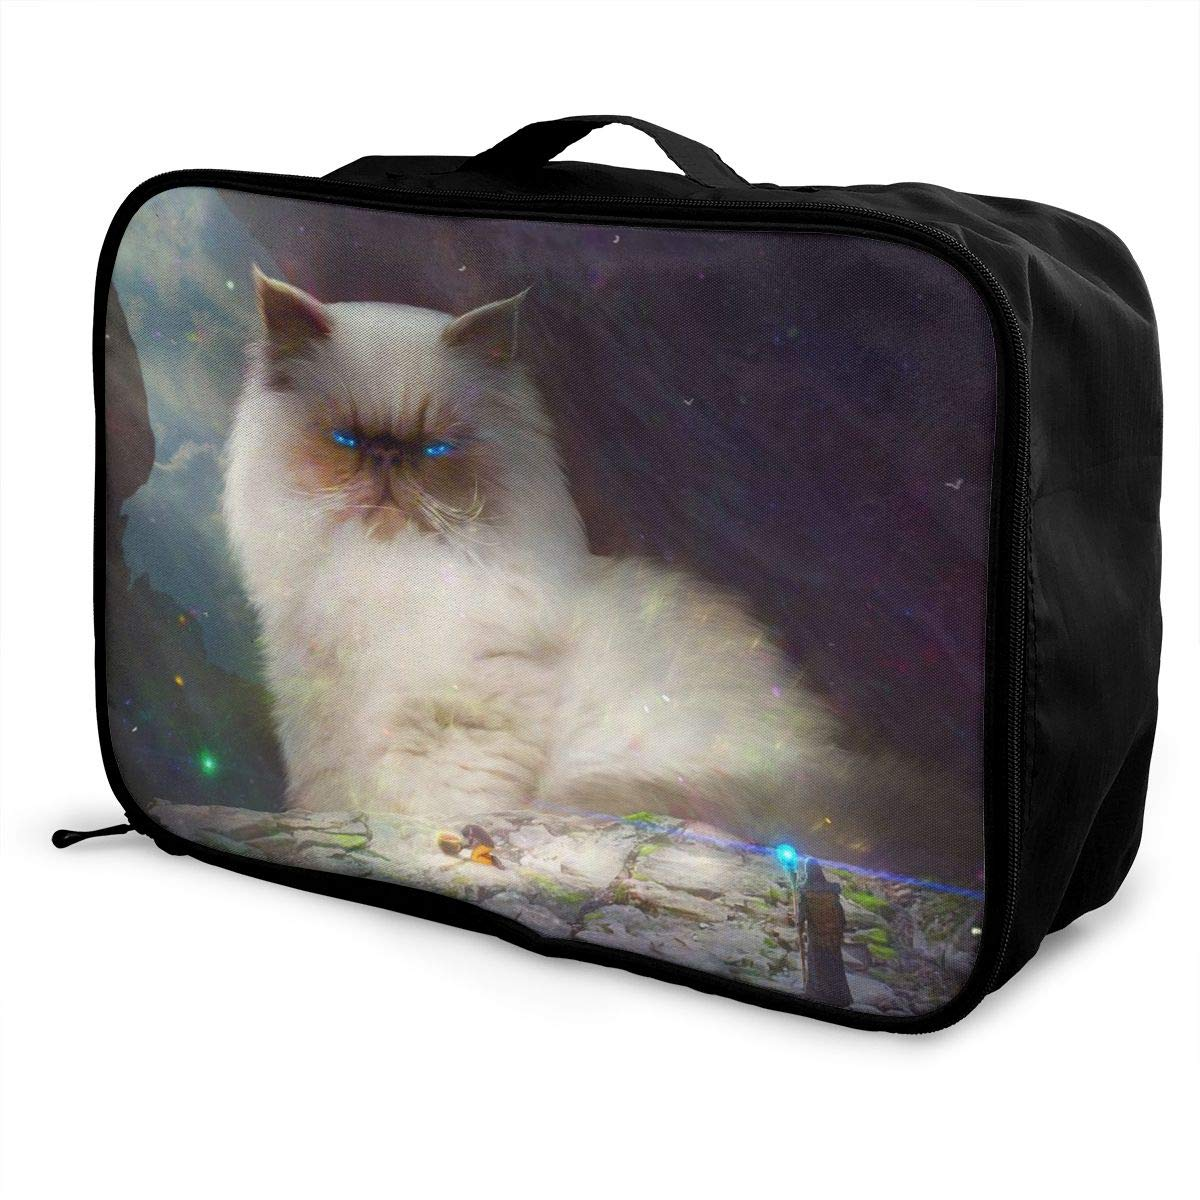 Cat King And Magician Travel Lightweight Waterproof Foldable Storage Portable Luggage Duffle Tote Bag Large Capacity In Trolley Handle Bags 6x11x15 Inch